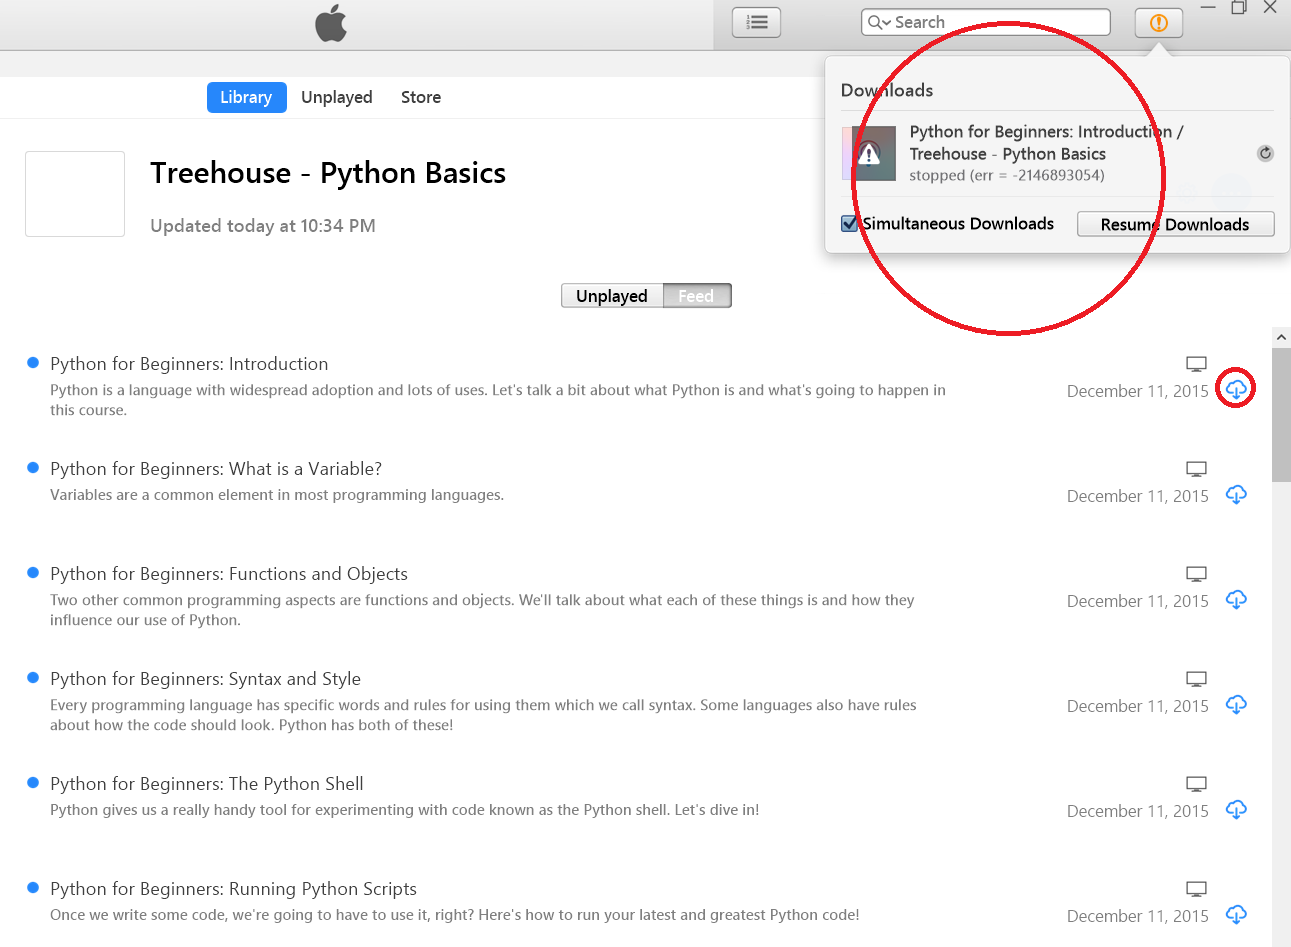 Having problem downloading using iTunes | Treehouse Community